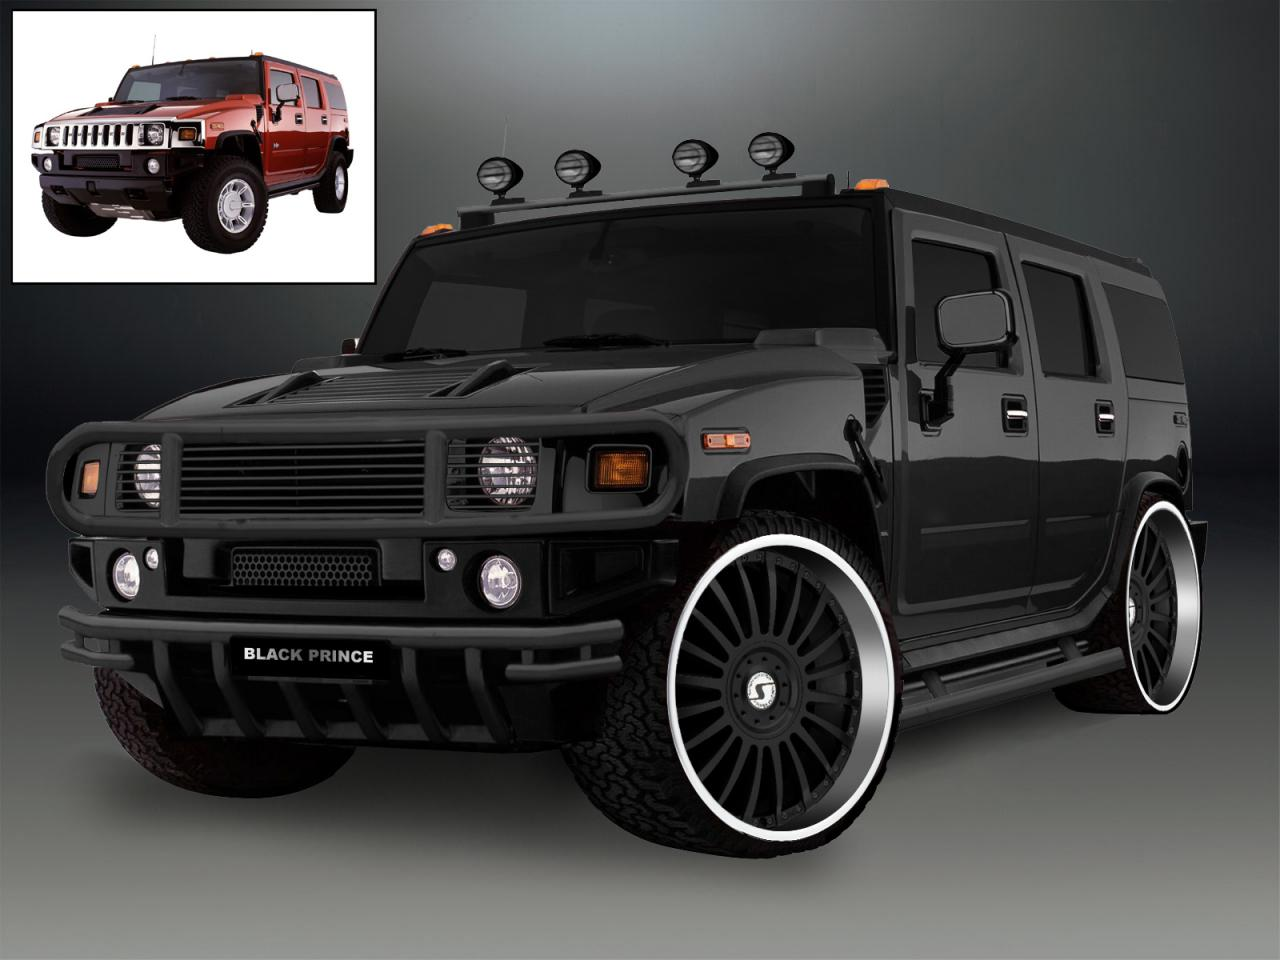 hummer h2 review autos post. Black Bedroom Furniture Sets. Home Design Ideas